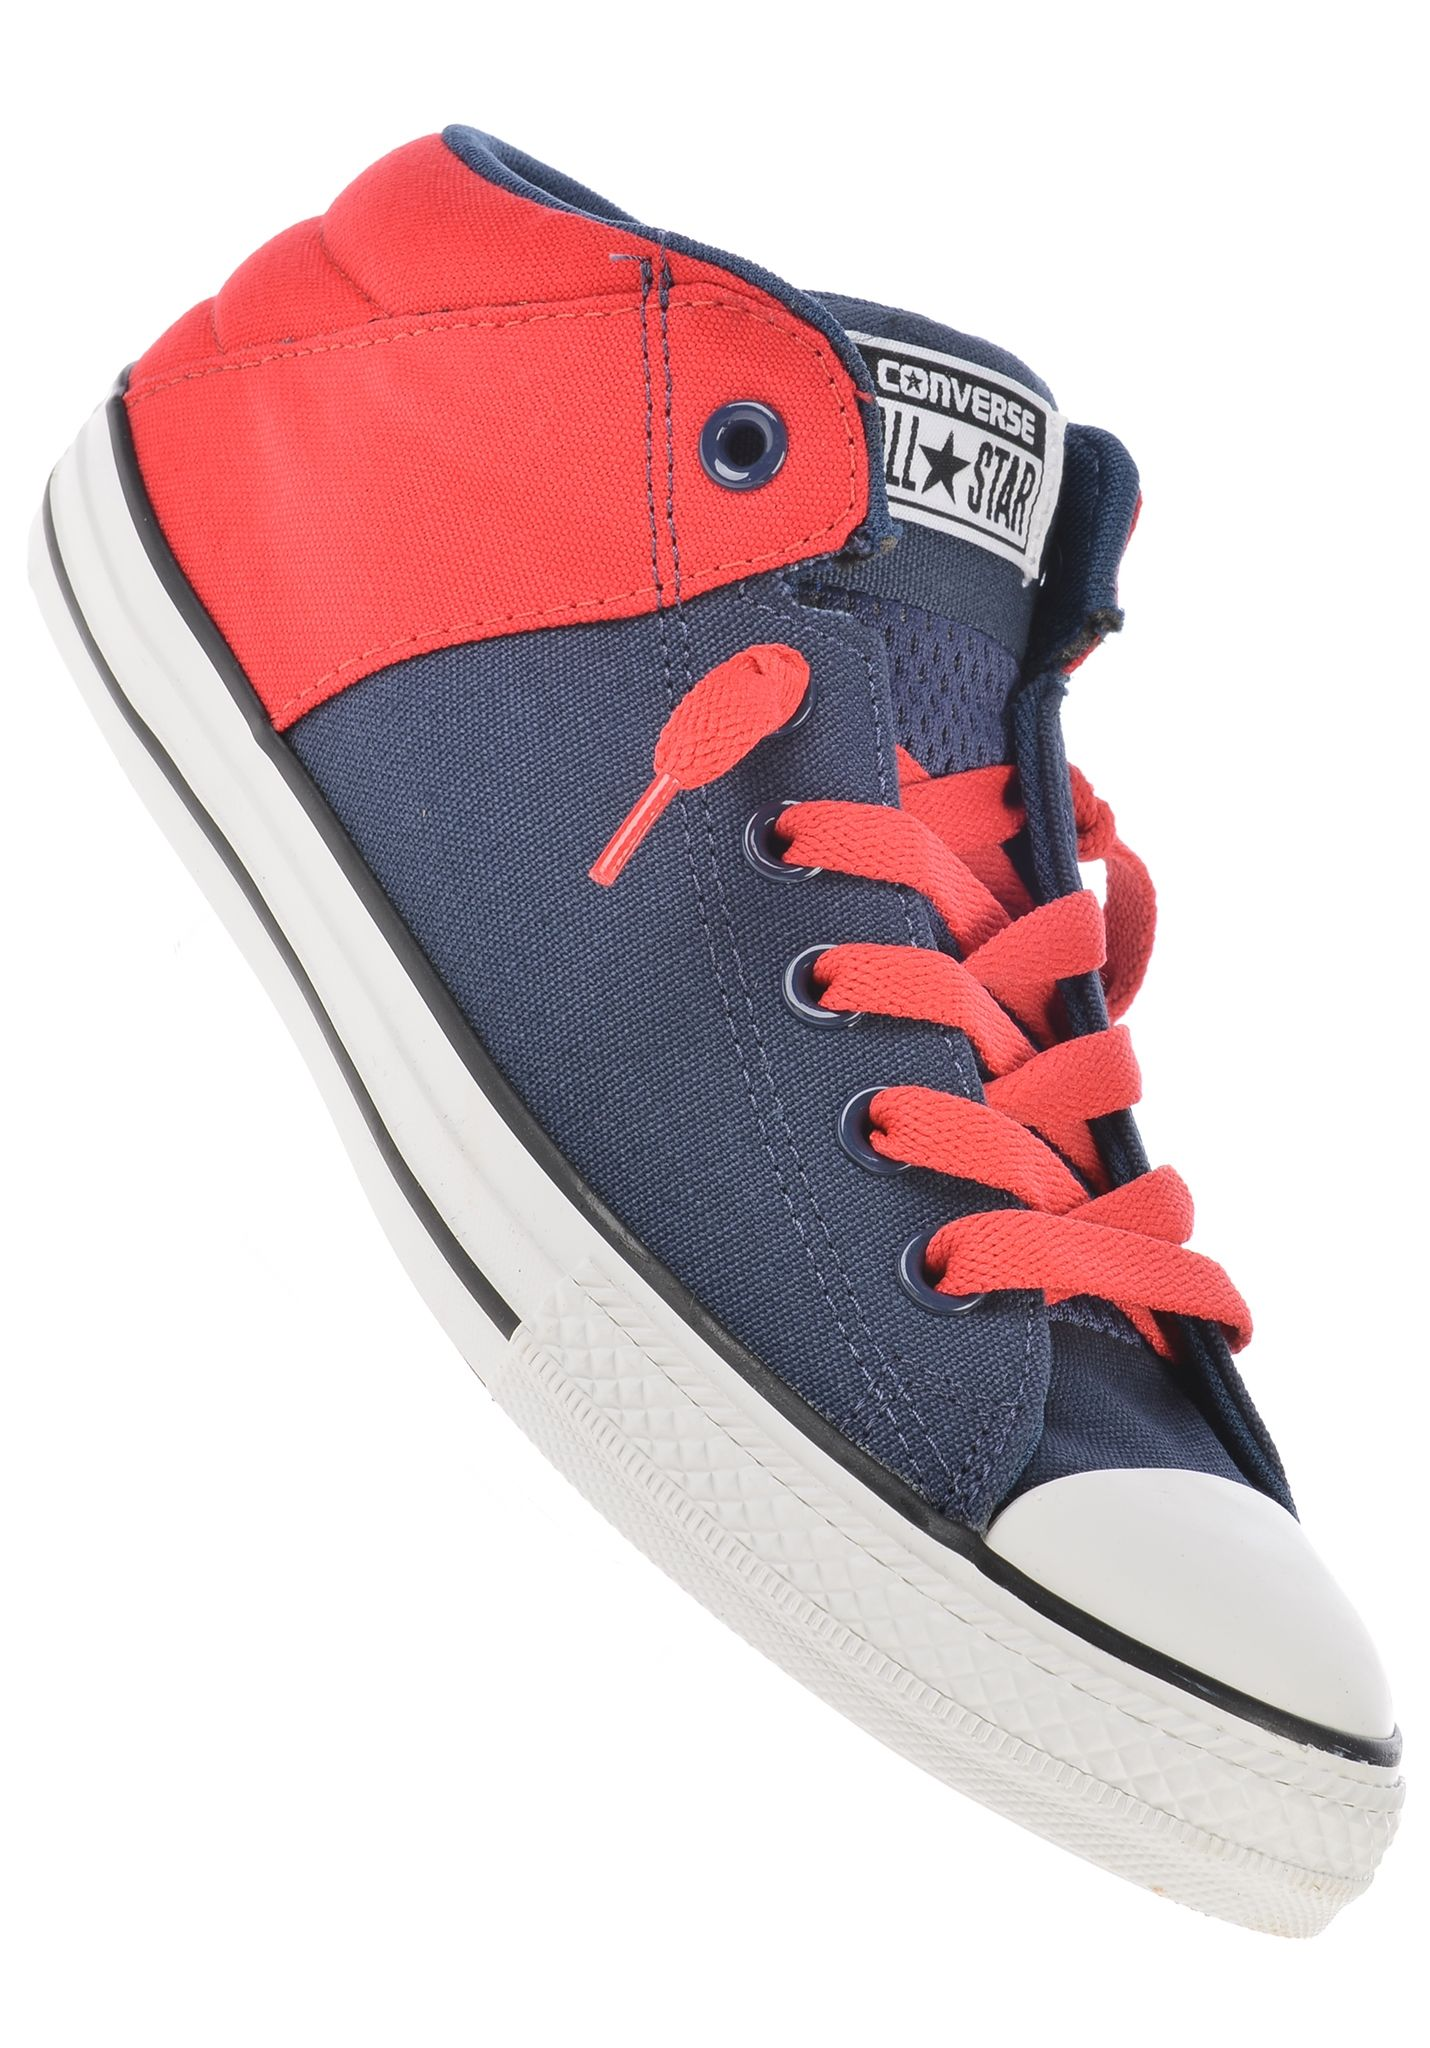 179570701956cf Converse Chuck Taylor All Star Axel Mid - Sneakers - Blue - Planet Sports